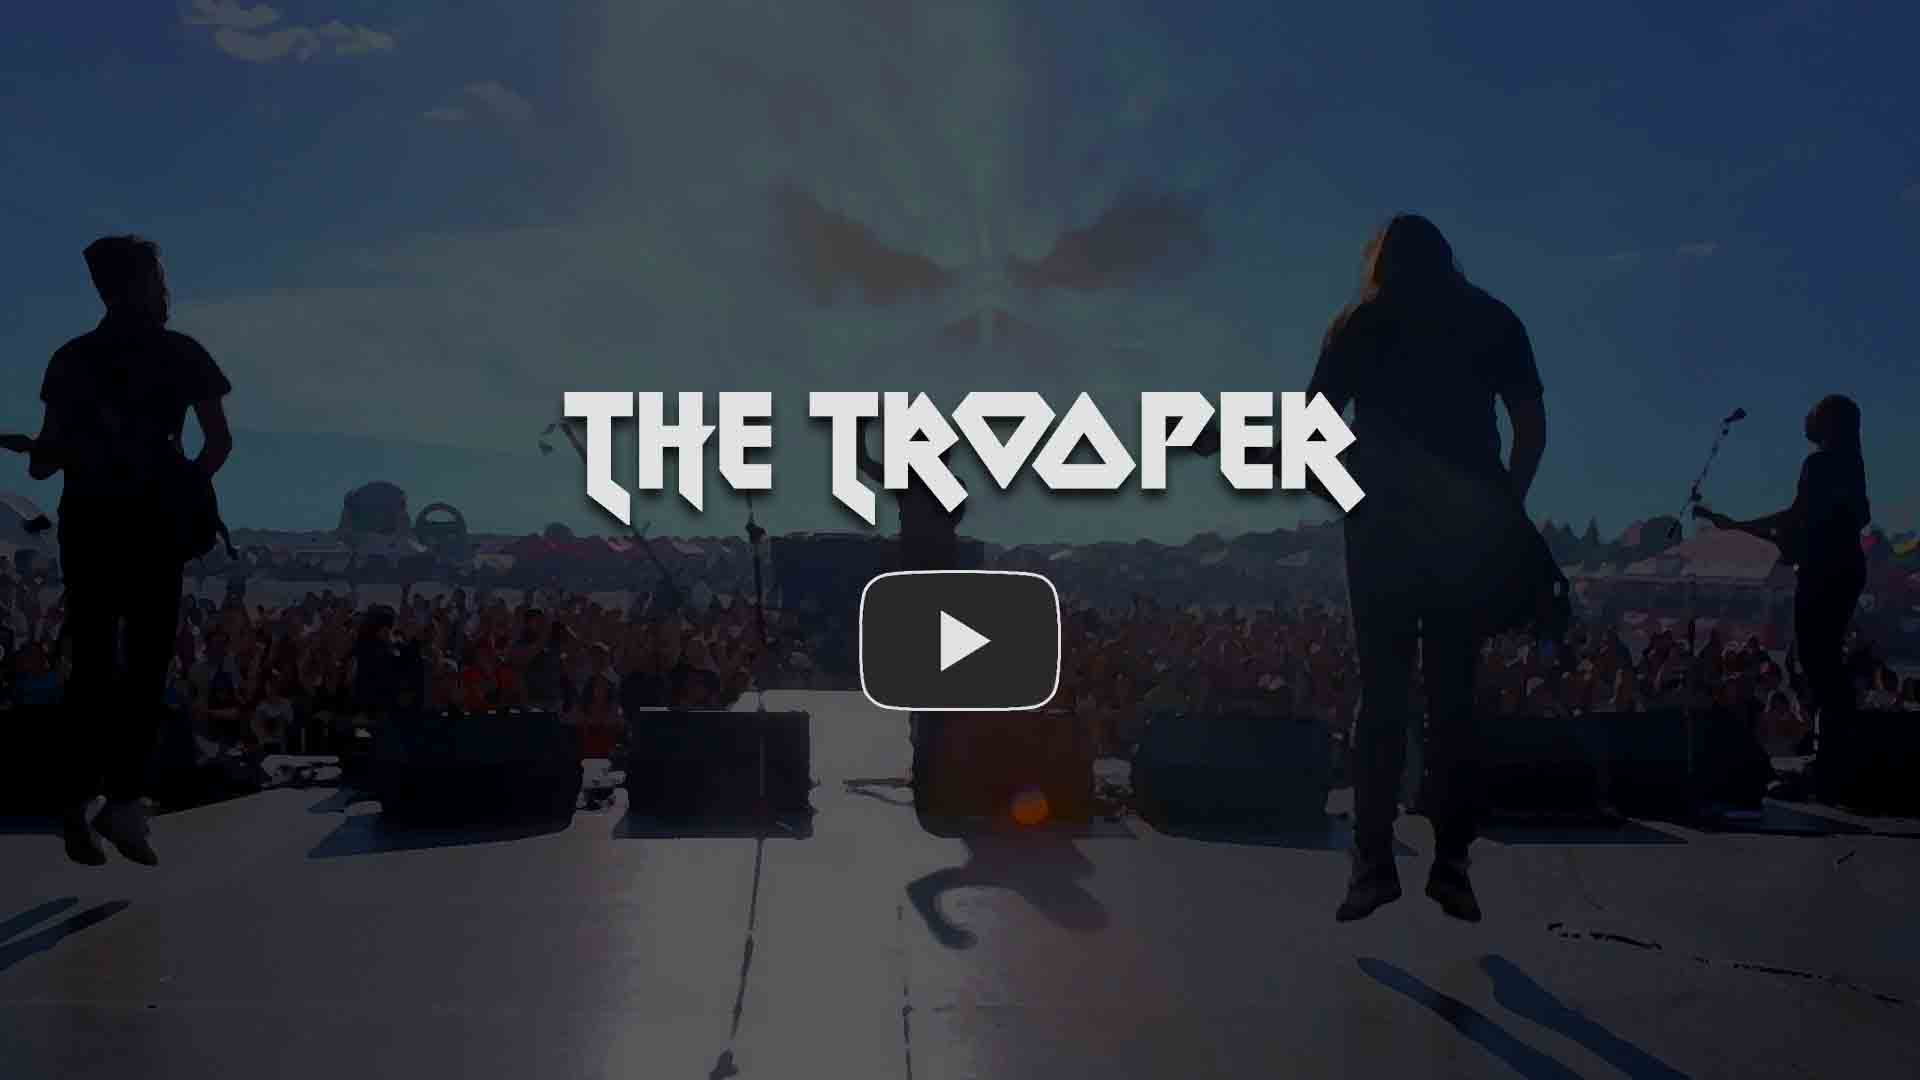 The Trooper_00001